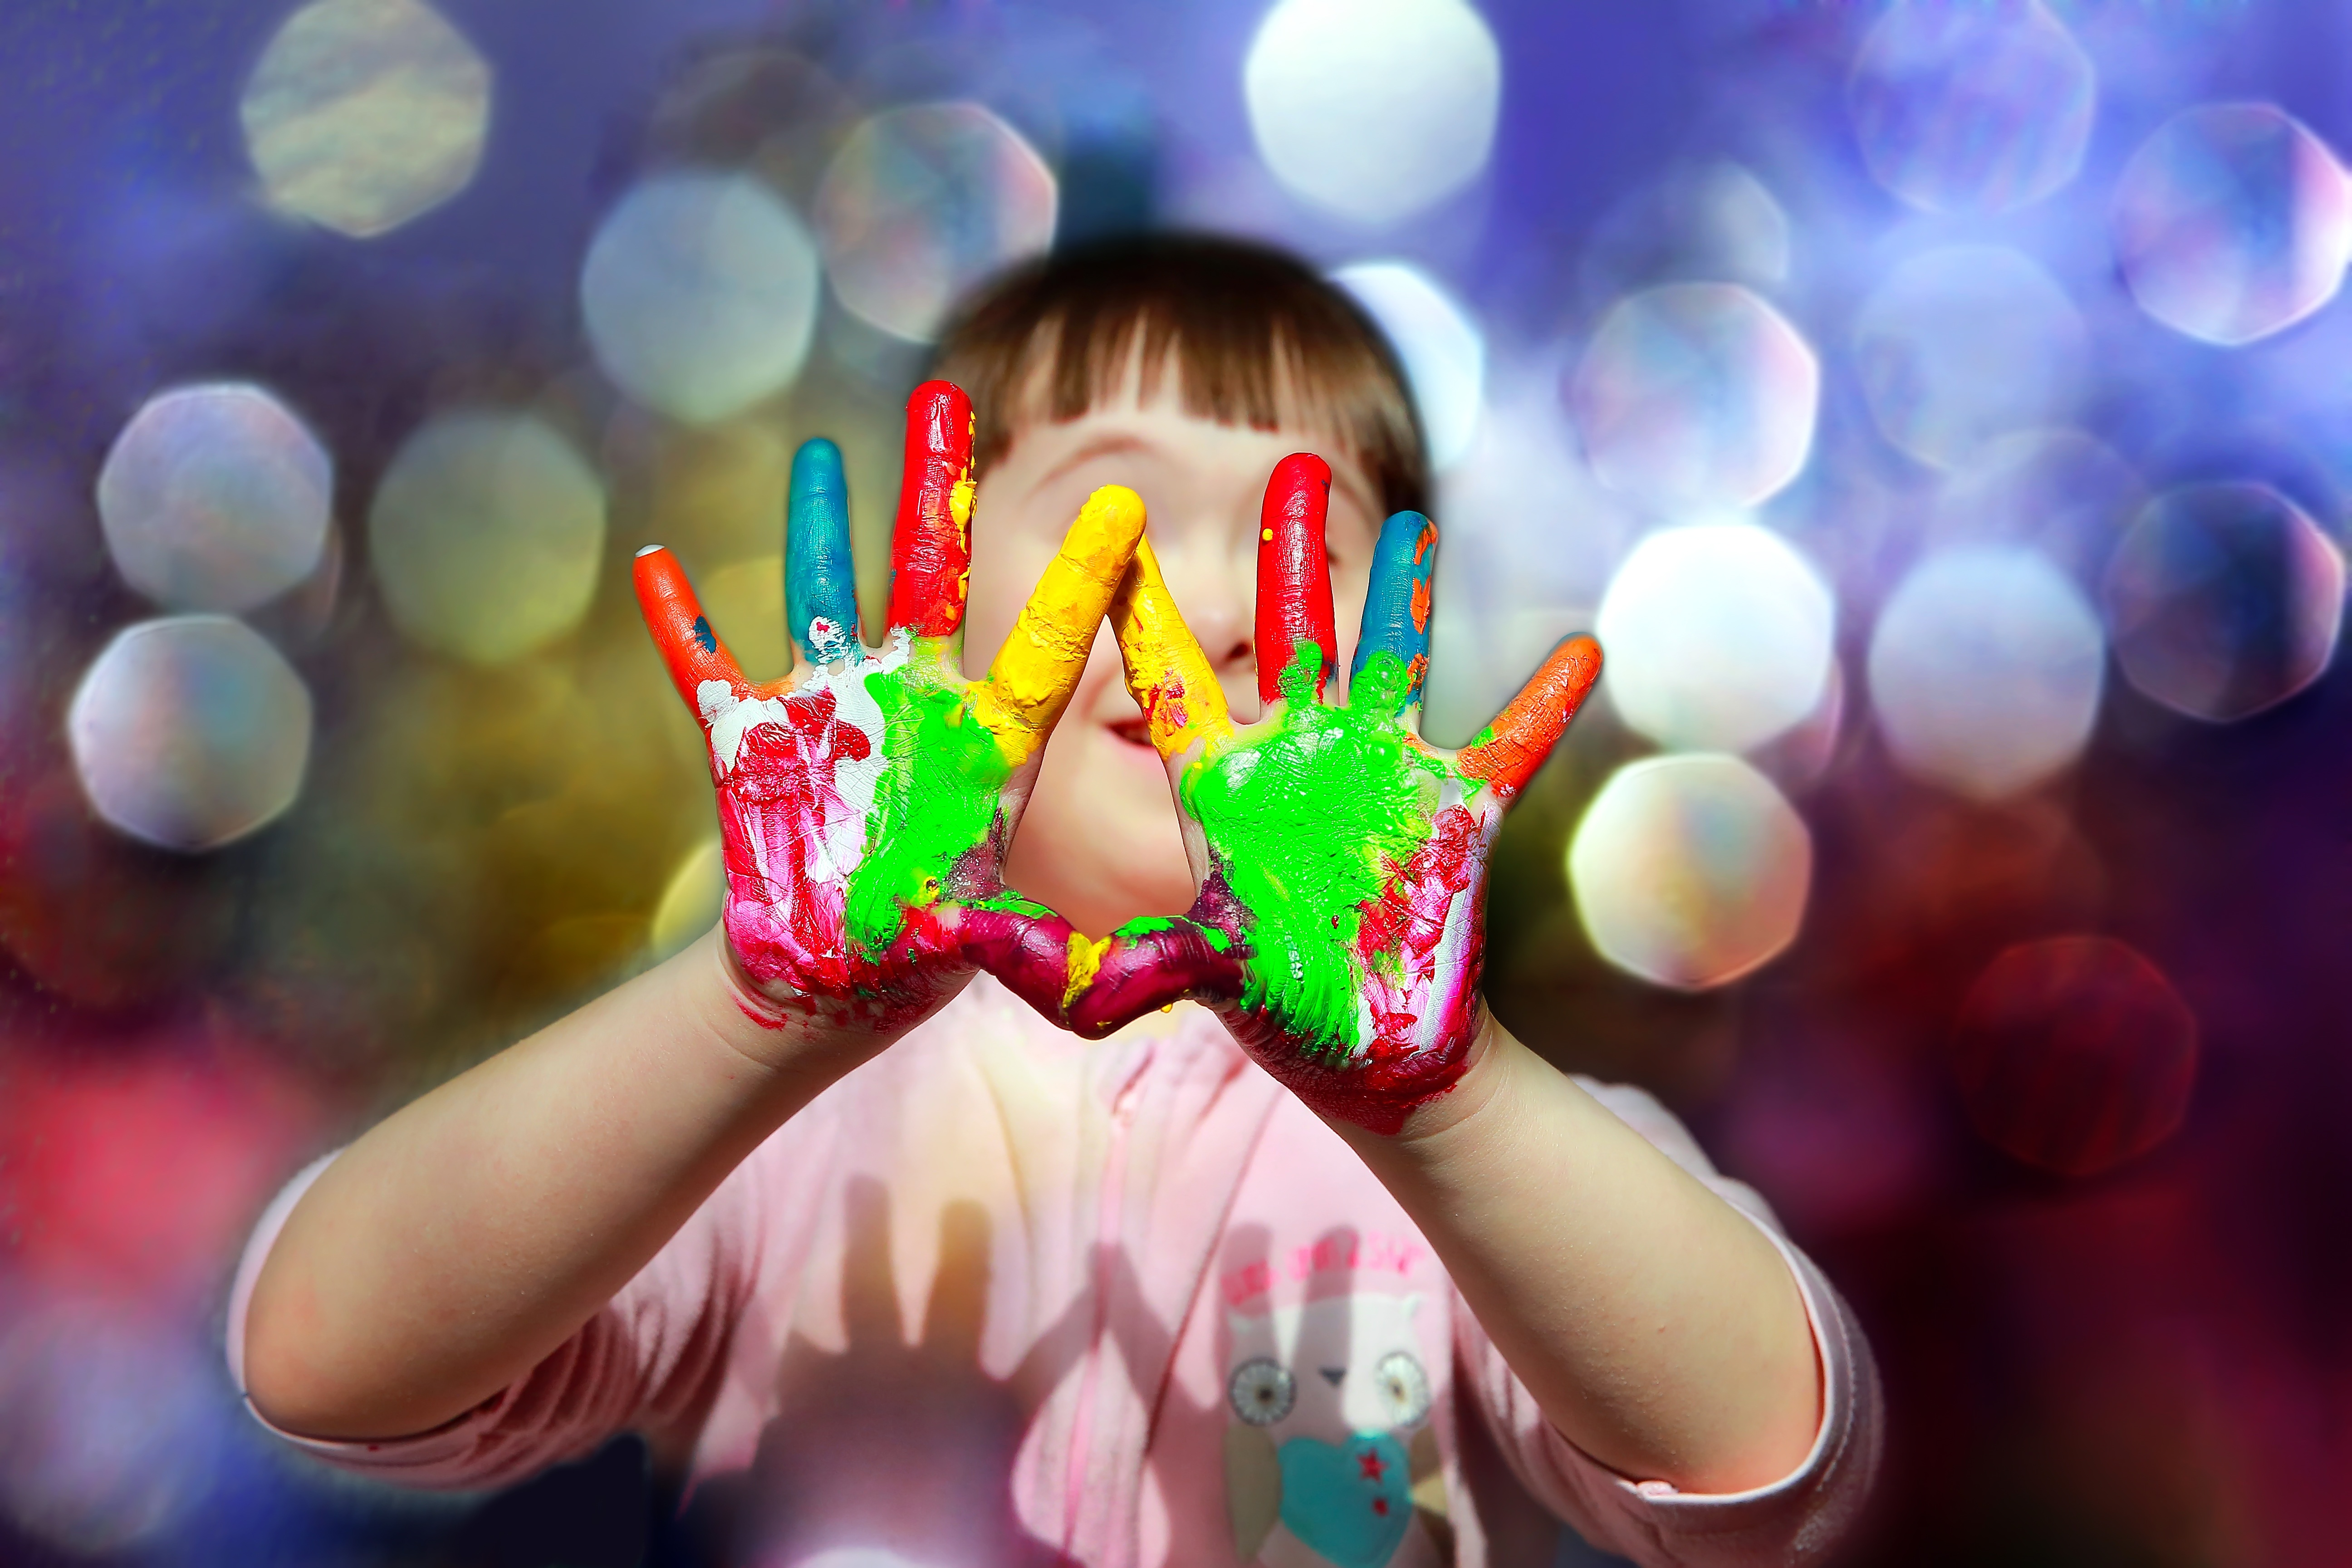 Cute-little-kid-with-painted-hands-539006670_5184x3456